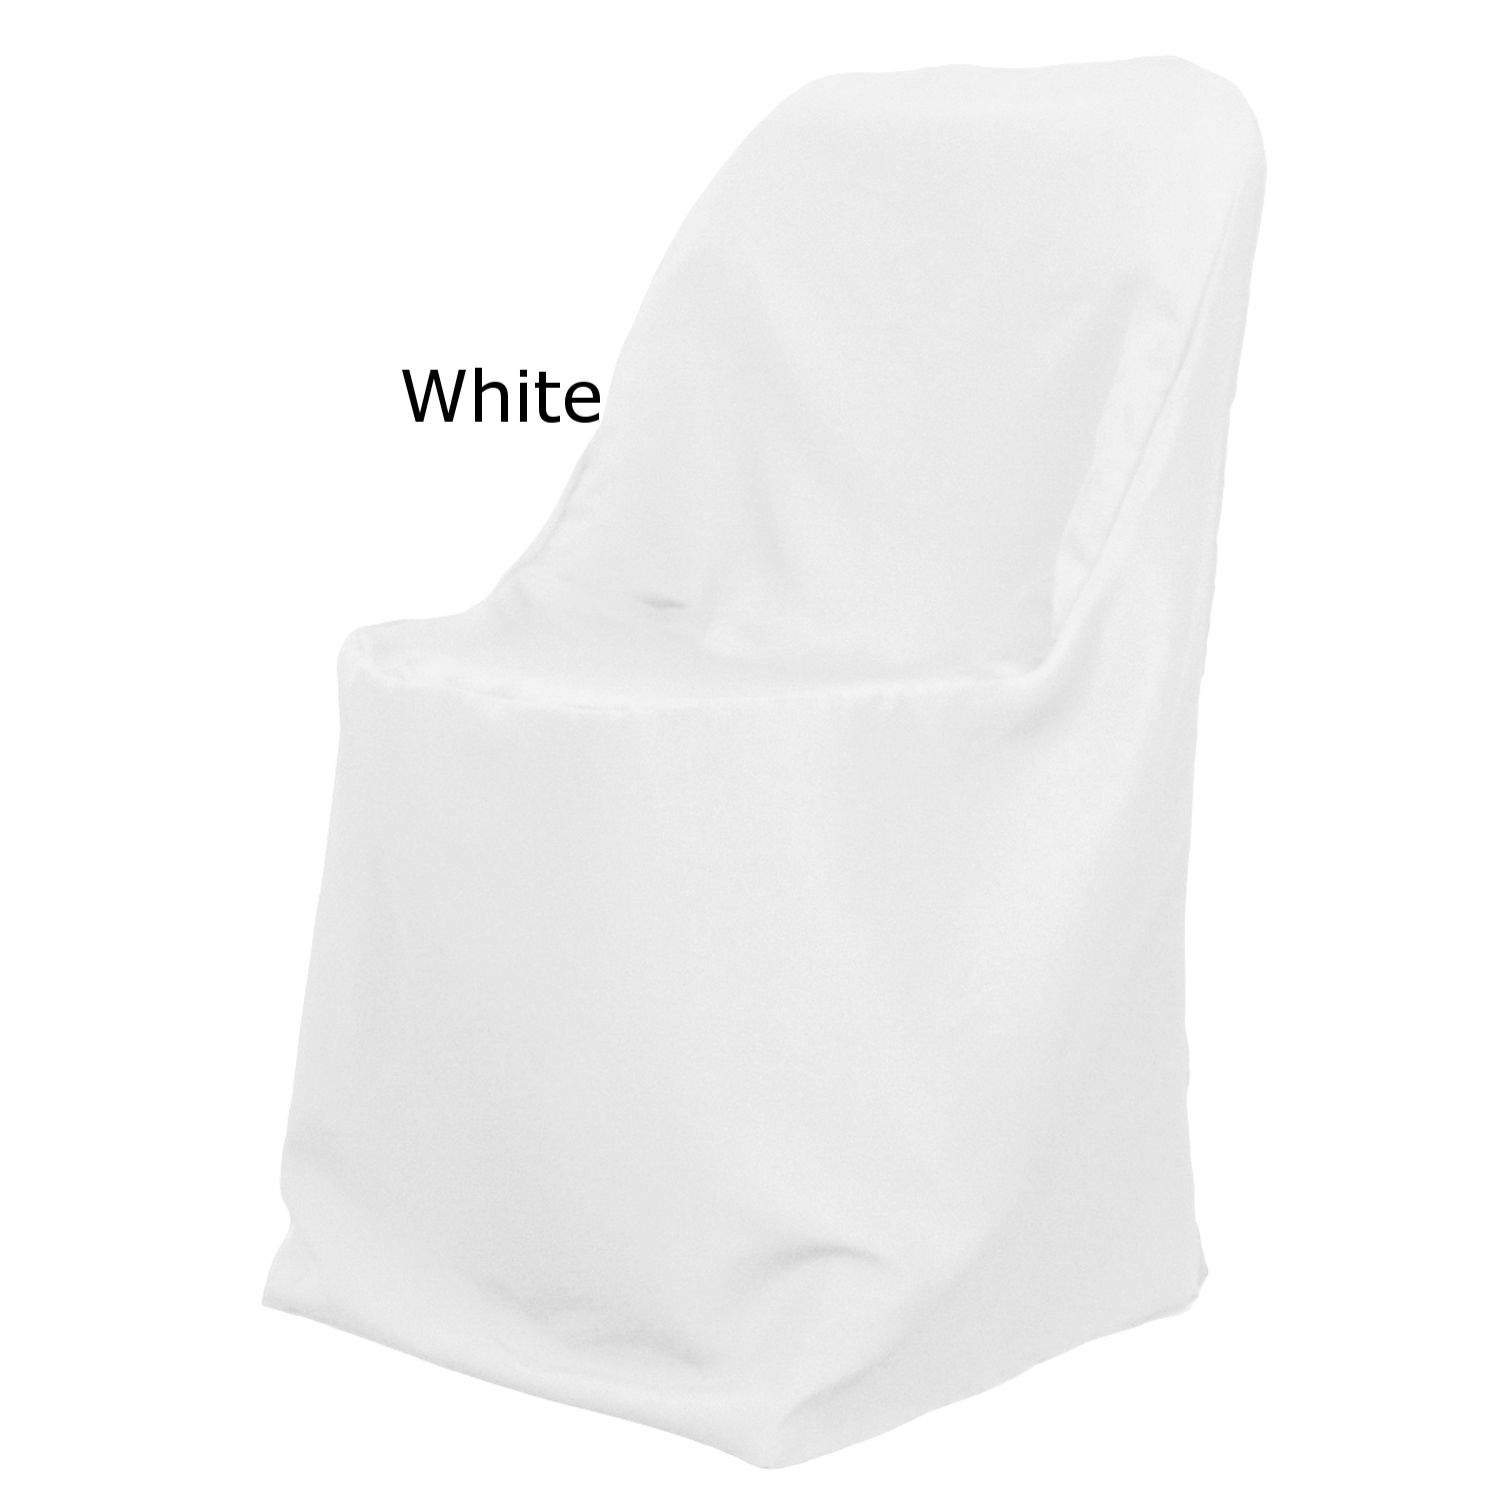 Chair Cover Polyester White.jpg